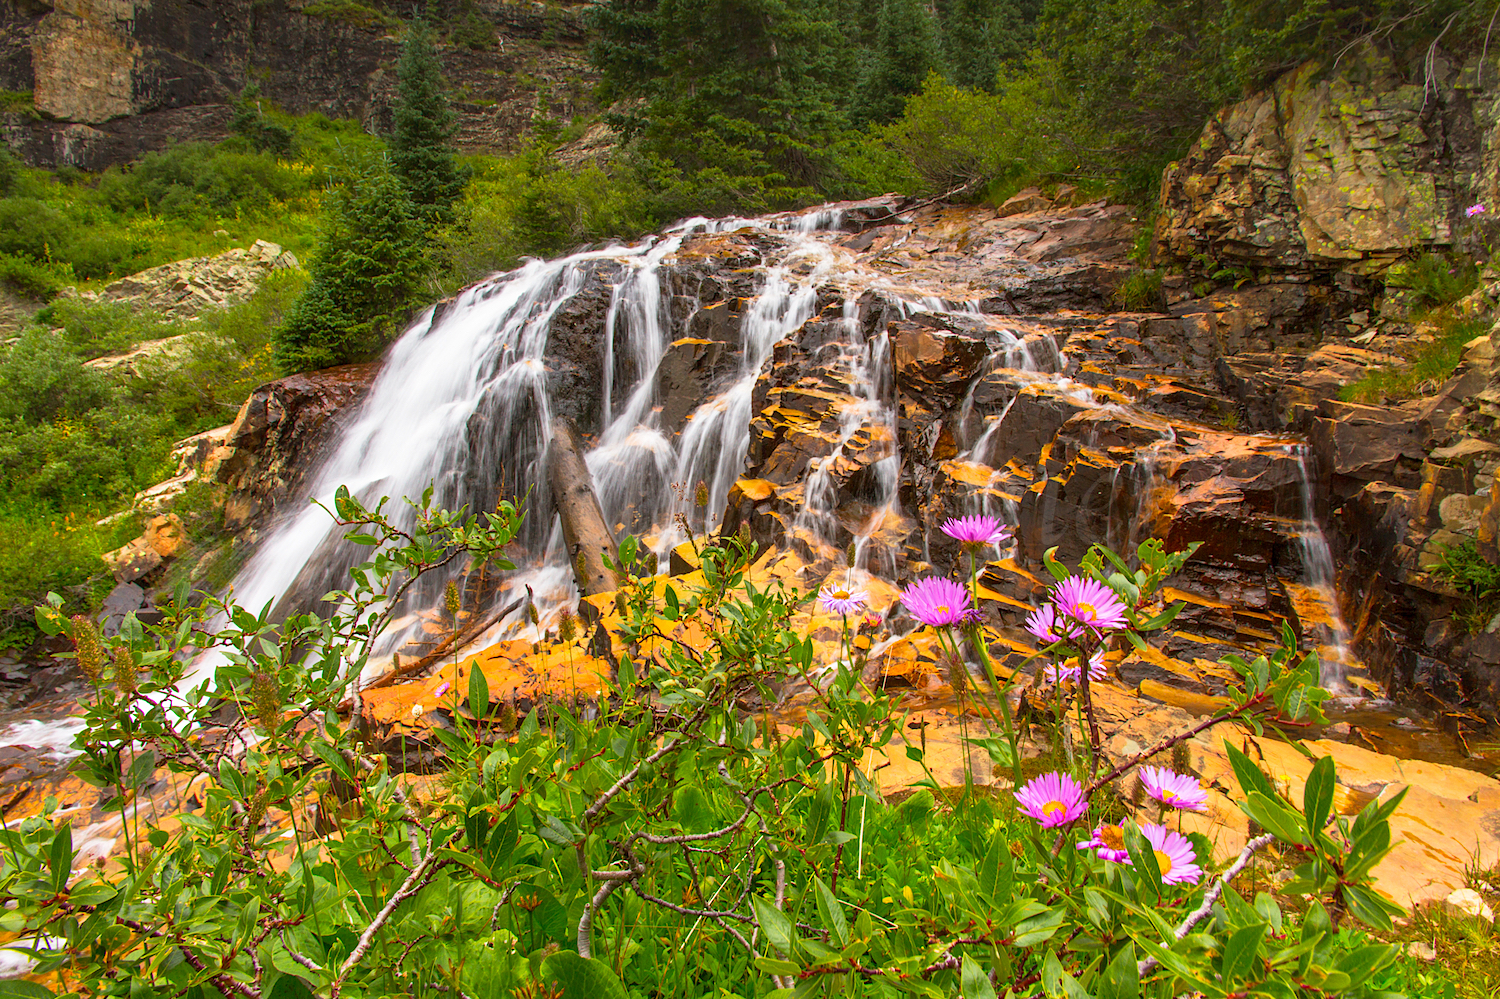 CASCADE DIVIDE WATERFALL, IMAGE # 5835